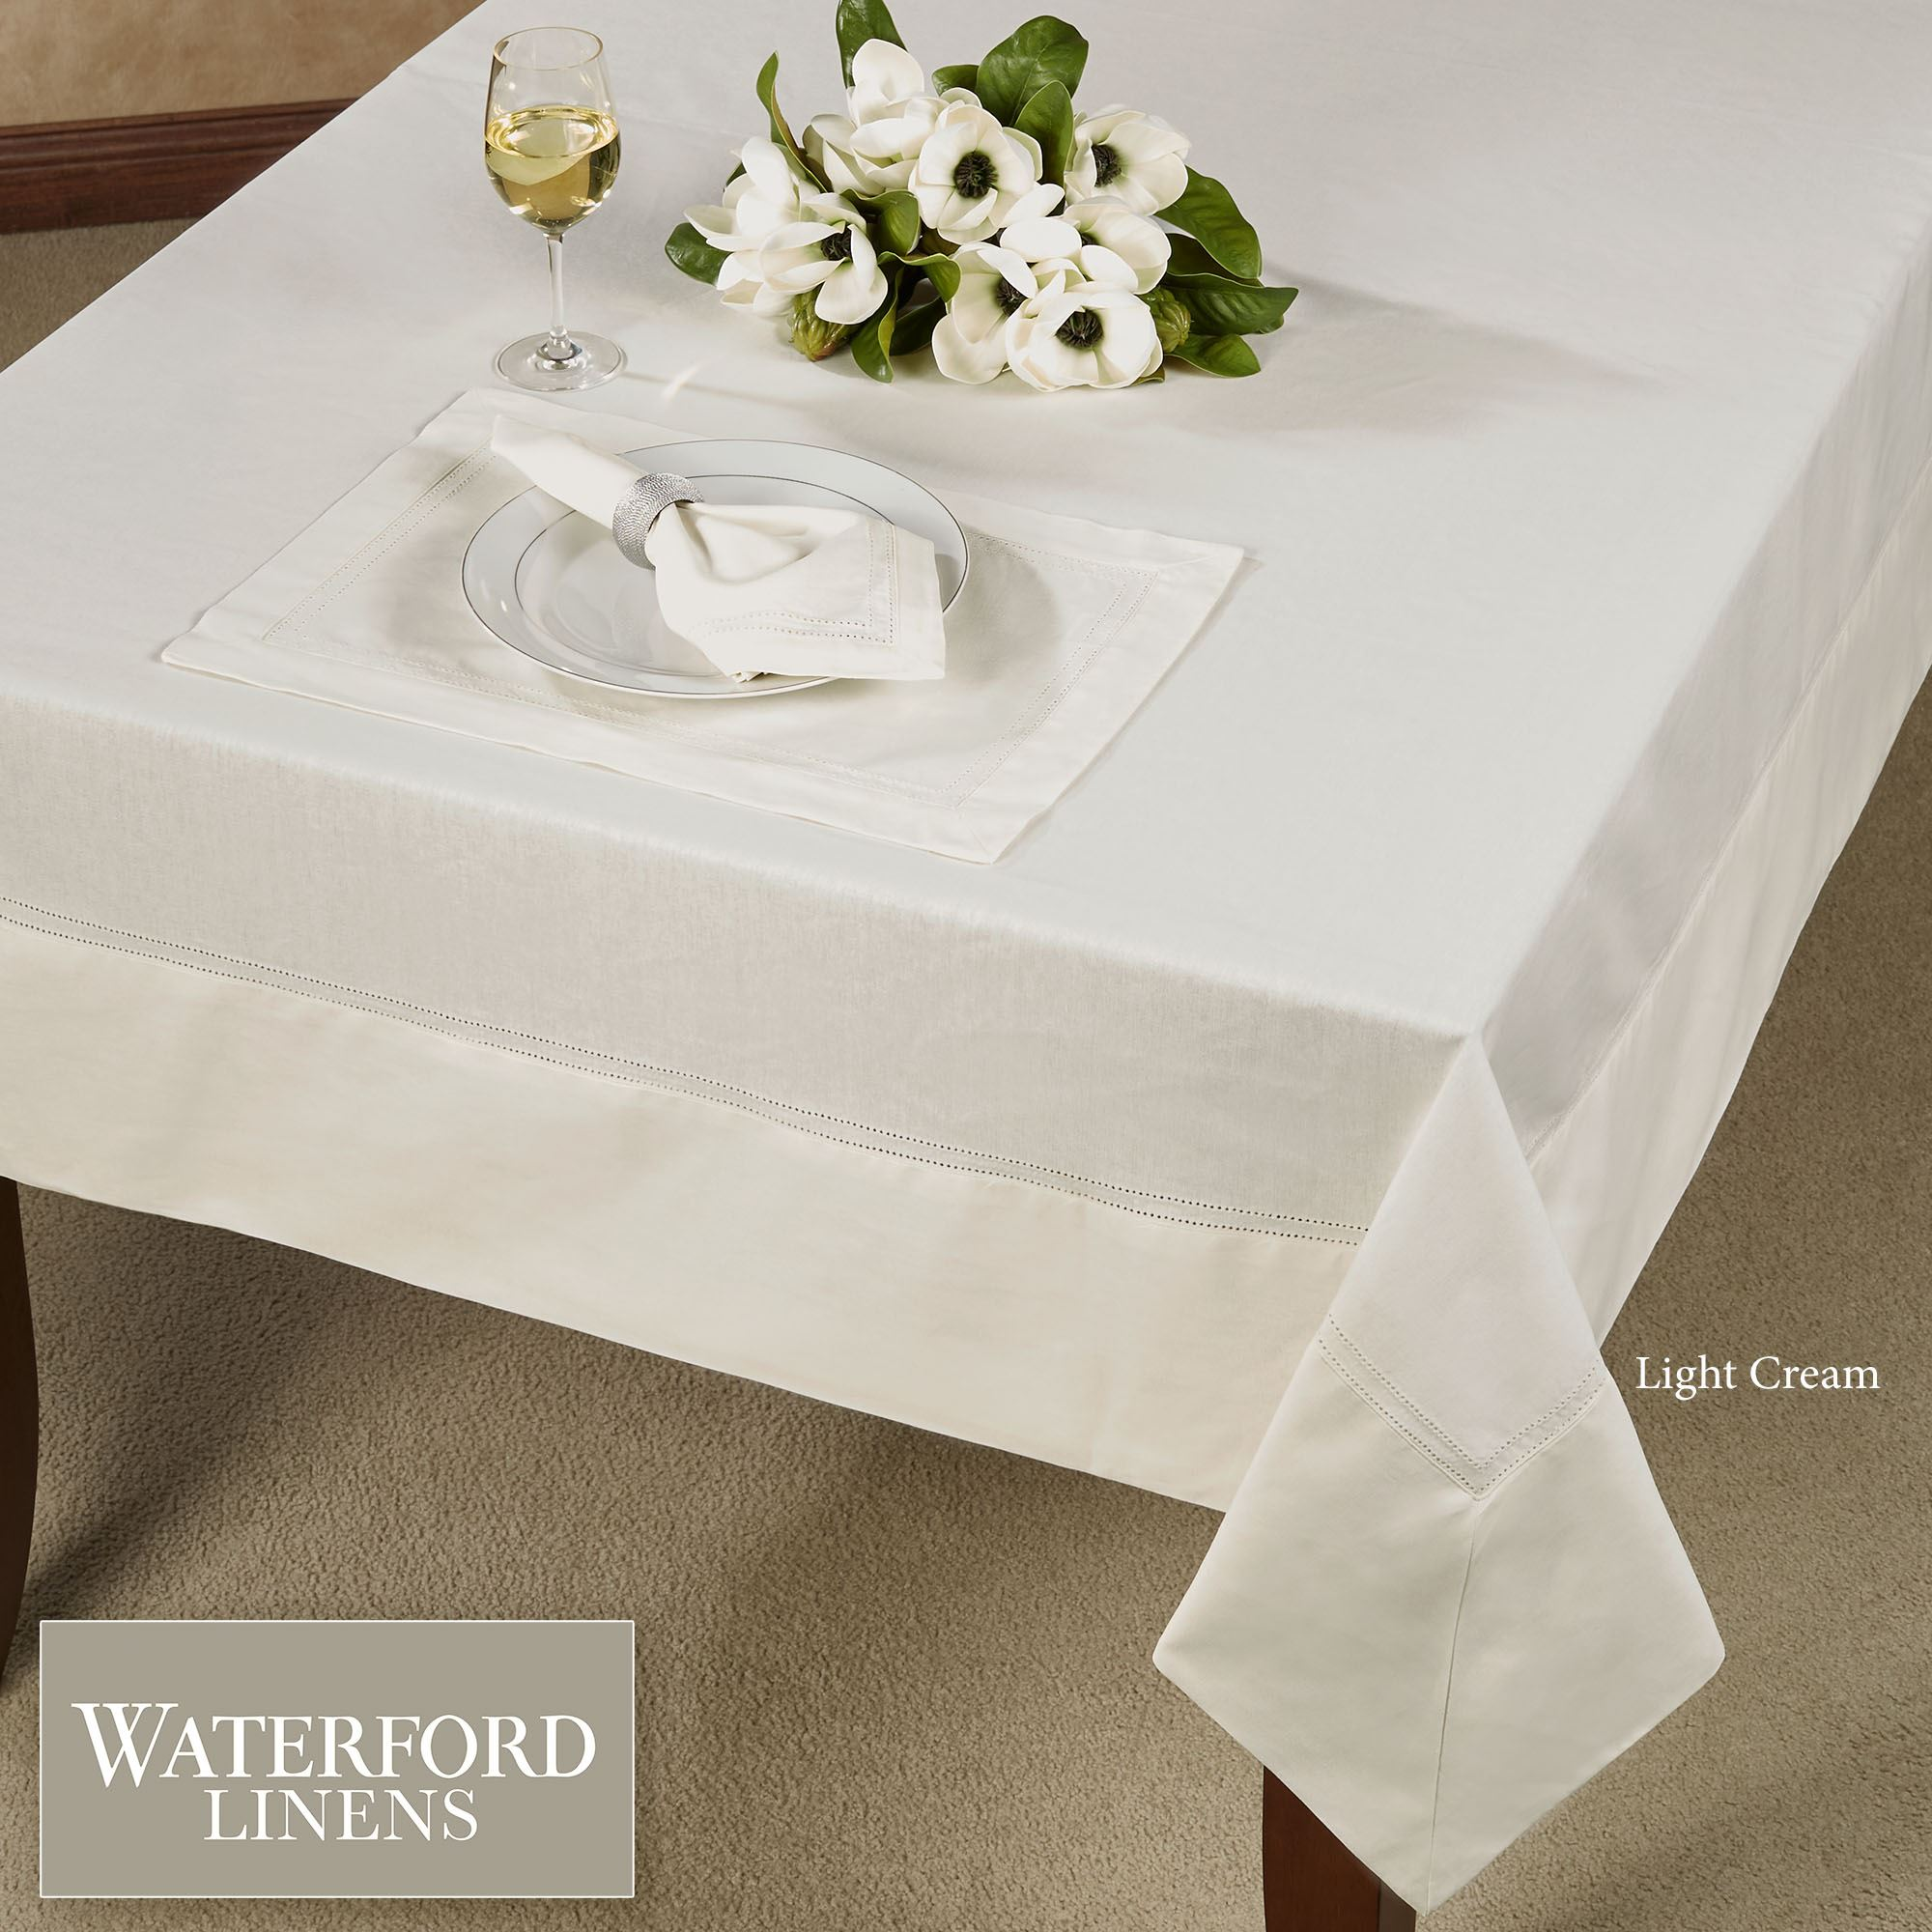 Dining Room Table Linens kate spade theme table weinhardt party rentals table linenskate spadedining tabledining roomtableclothsdinning Corra Table Linens From Waterford Linens